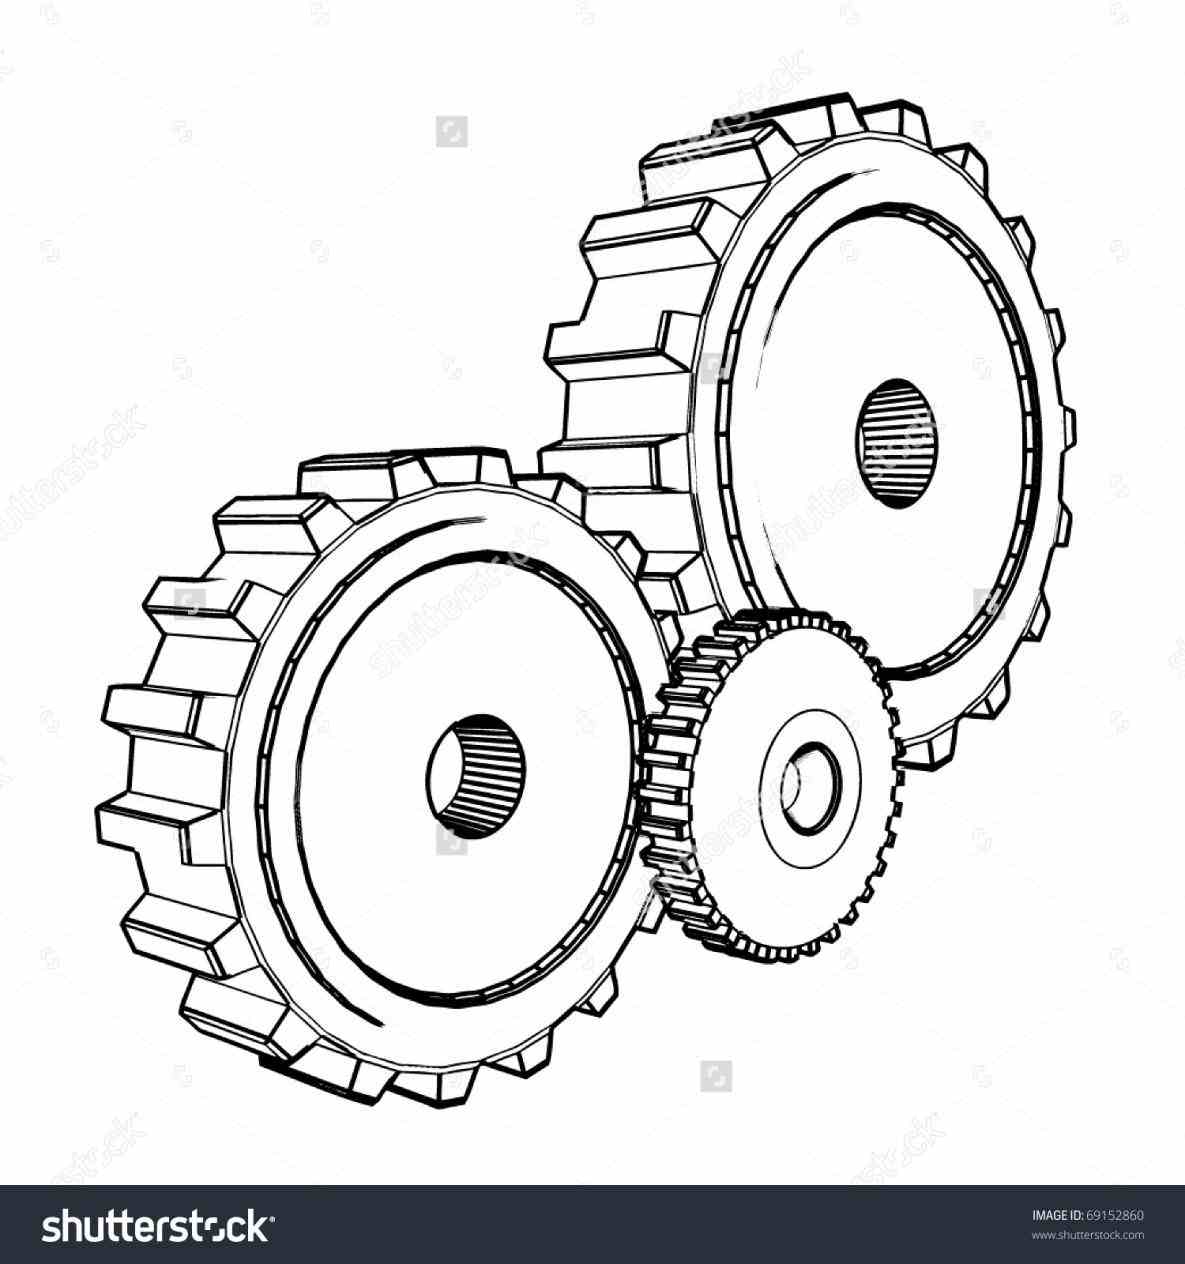 1185x1264 Steampunk Gears And Cogs Drawing